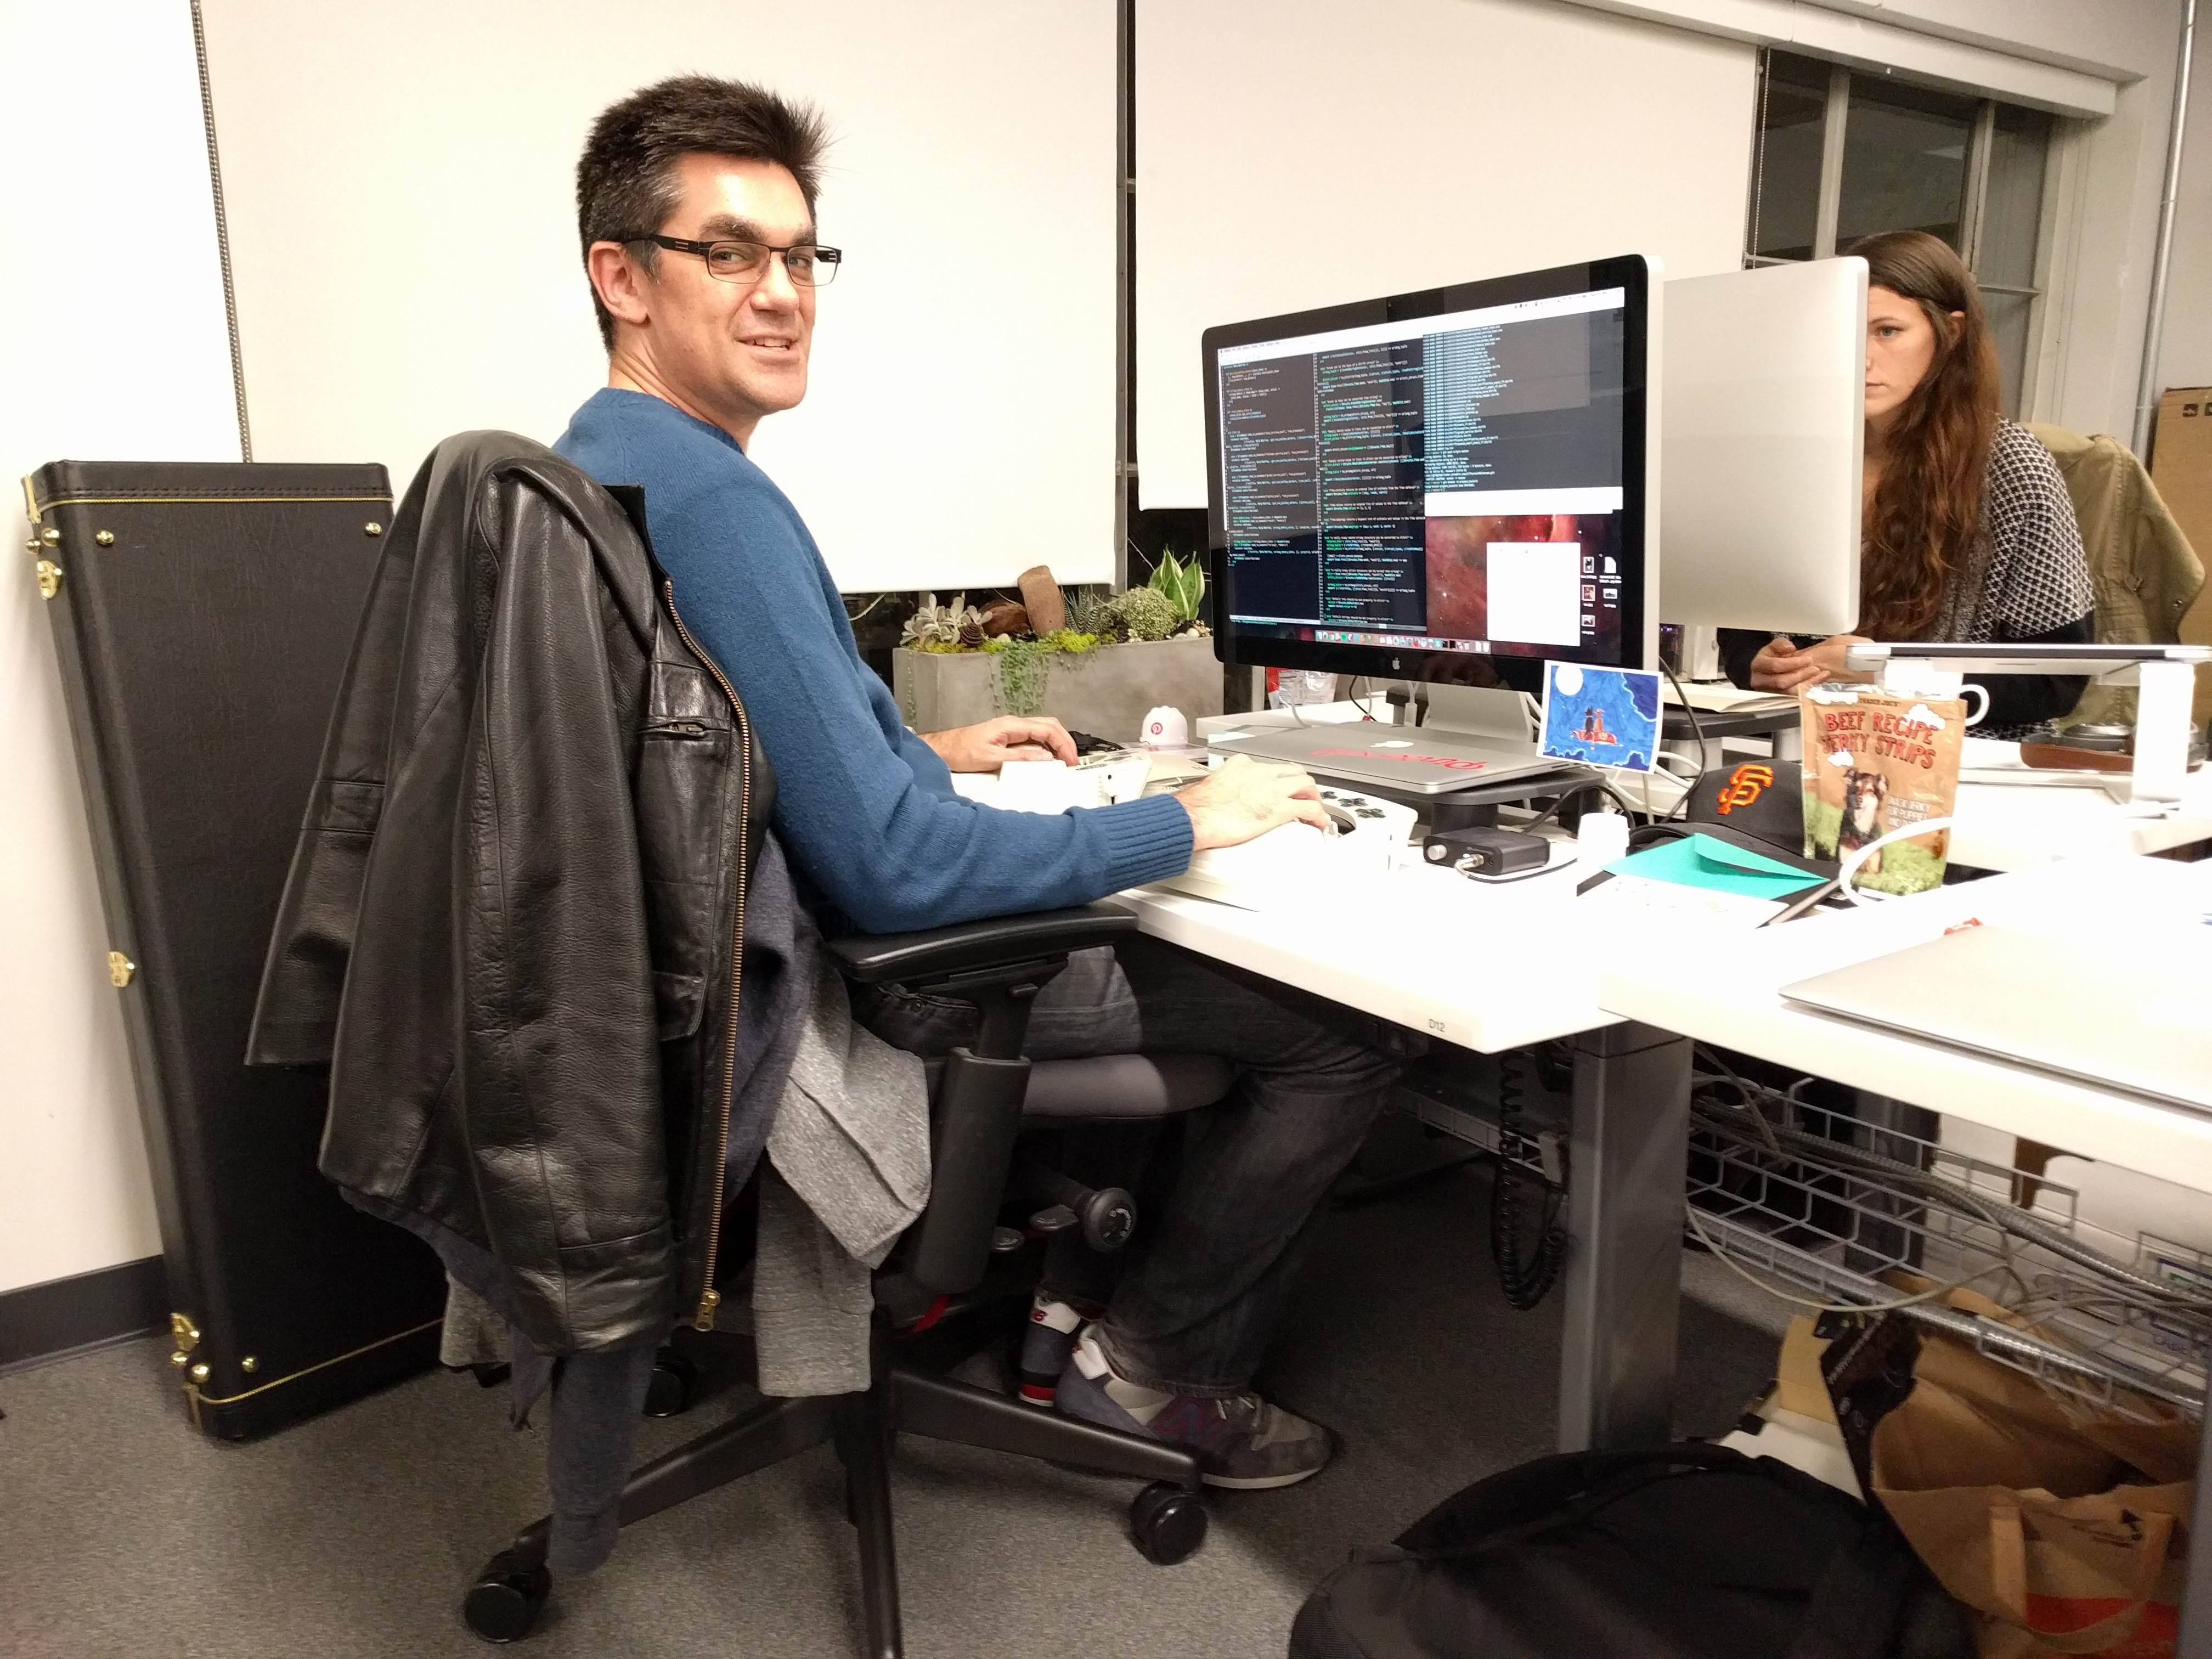 Pinterest product platform software engineer Steve Cohen. Yes, that's Elixir in his Emacs window.